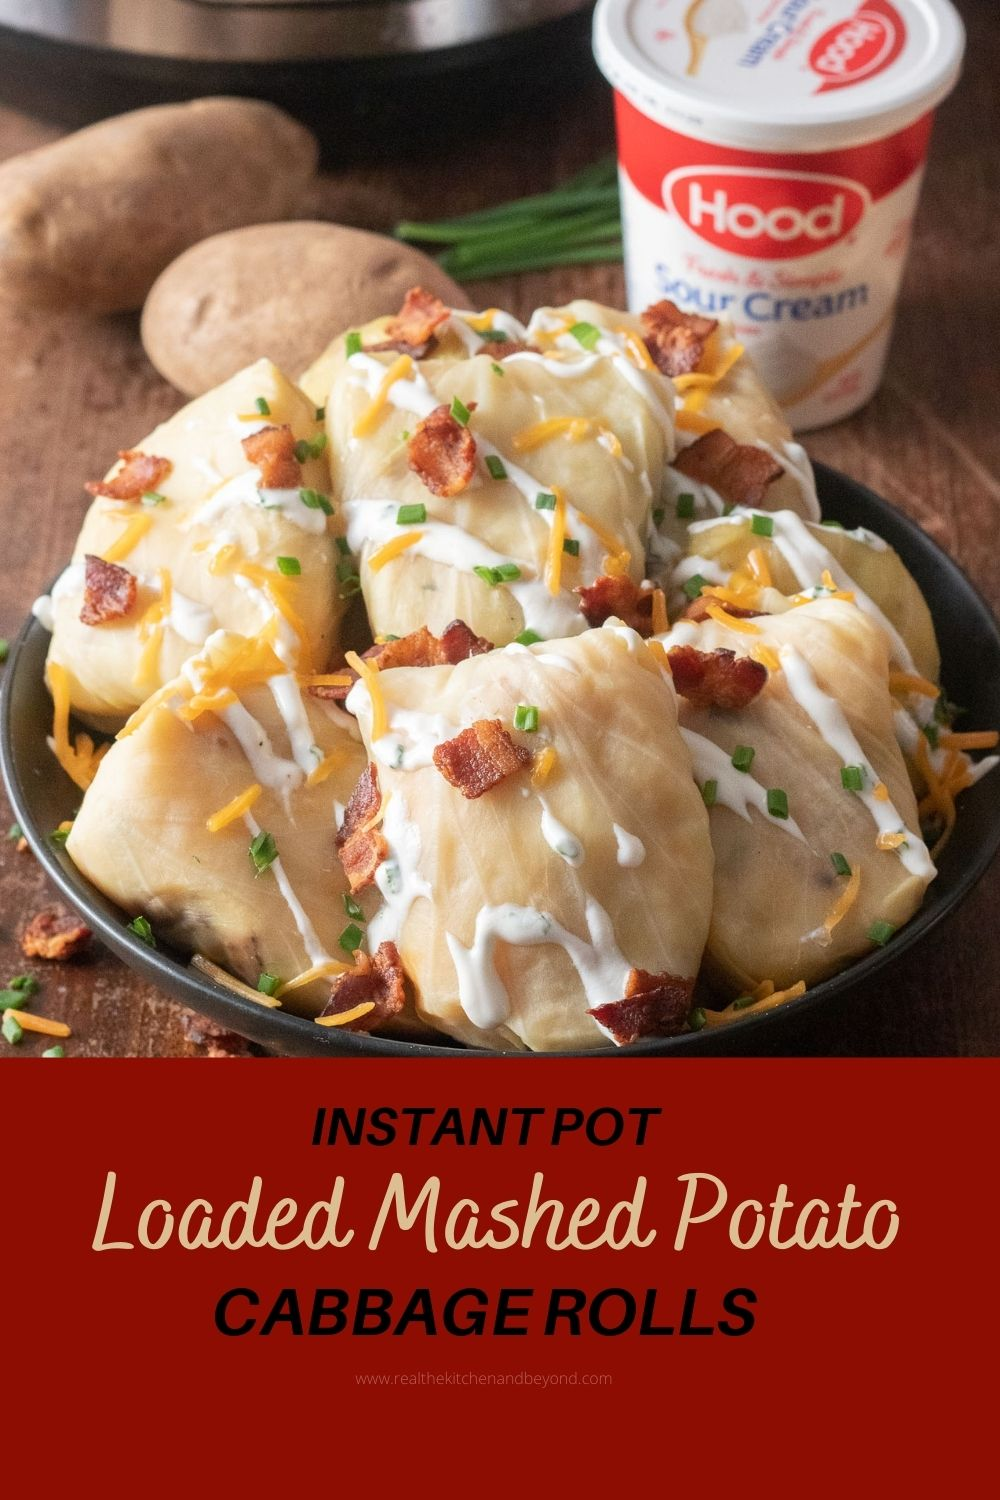 cabbage rolls garnished with bacon bits, yellow cheddar, chives, sour cream chive drizzle; Hood Sour Cream 16 oz, russet potatoes, and Instant Pot in background